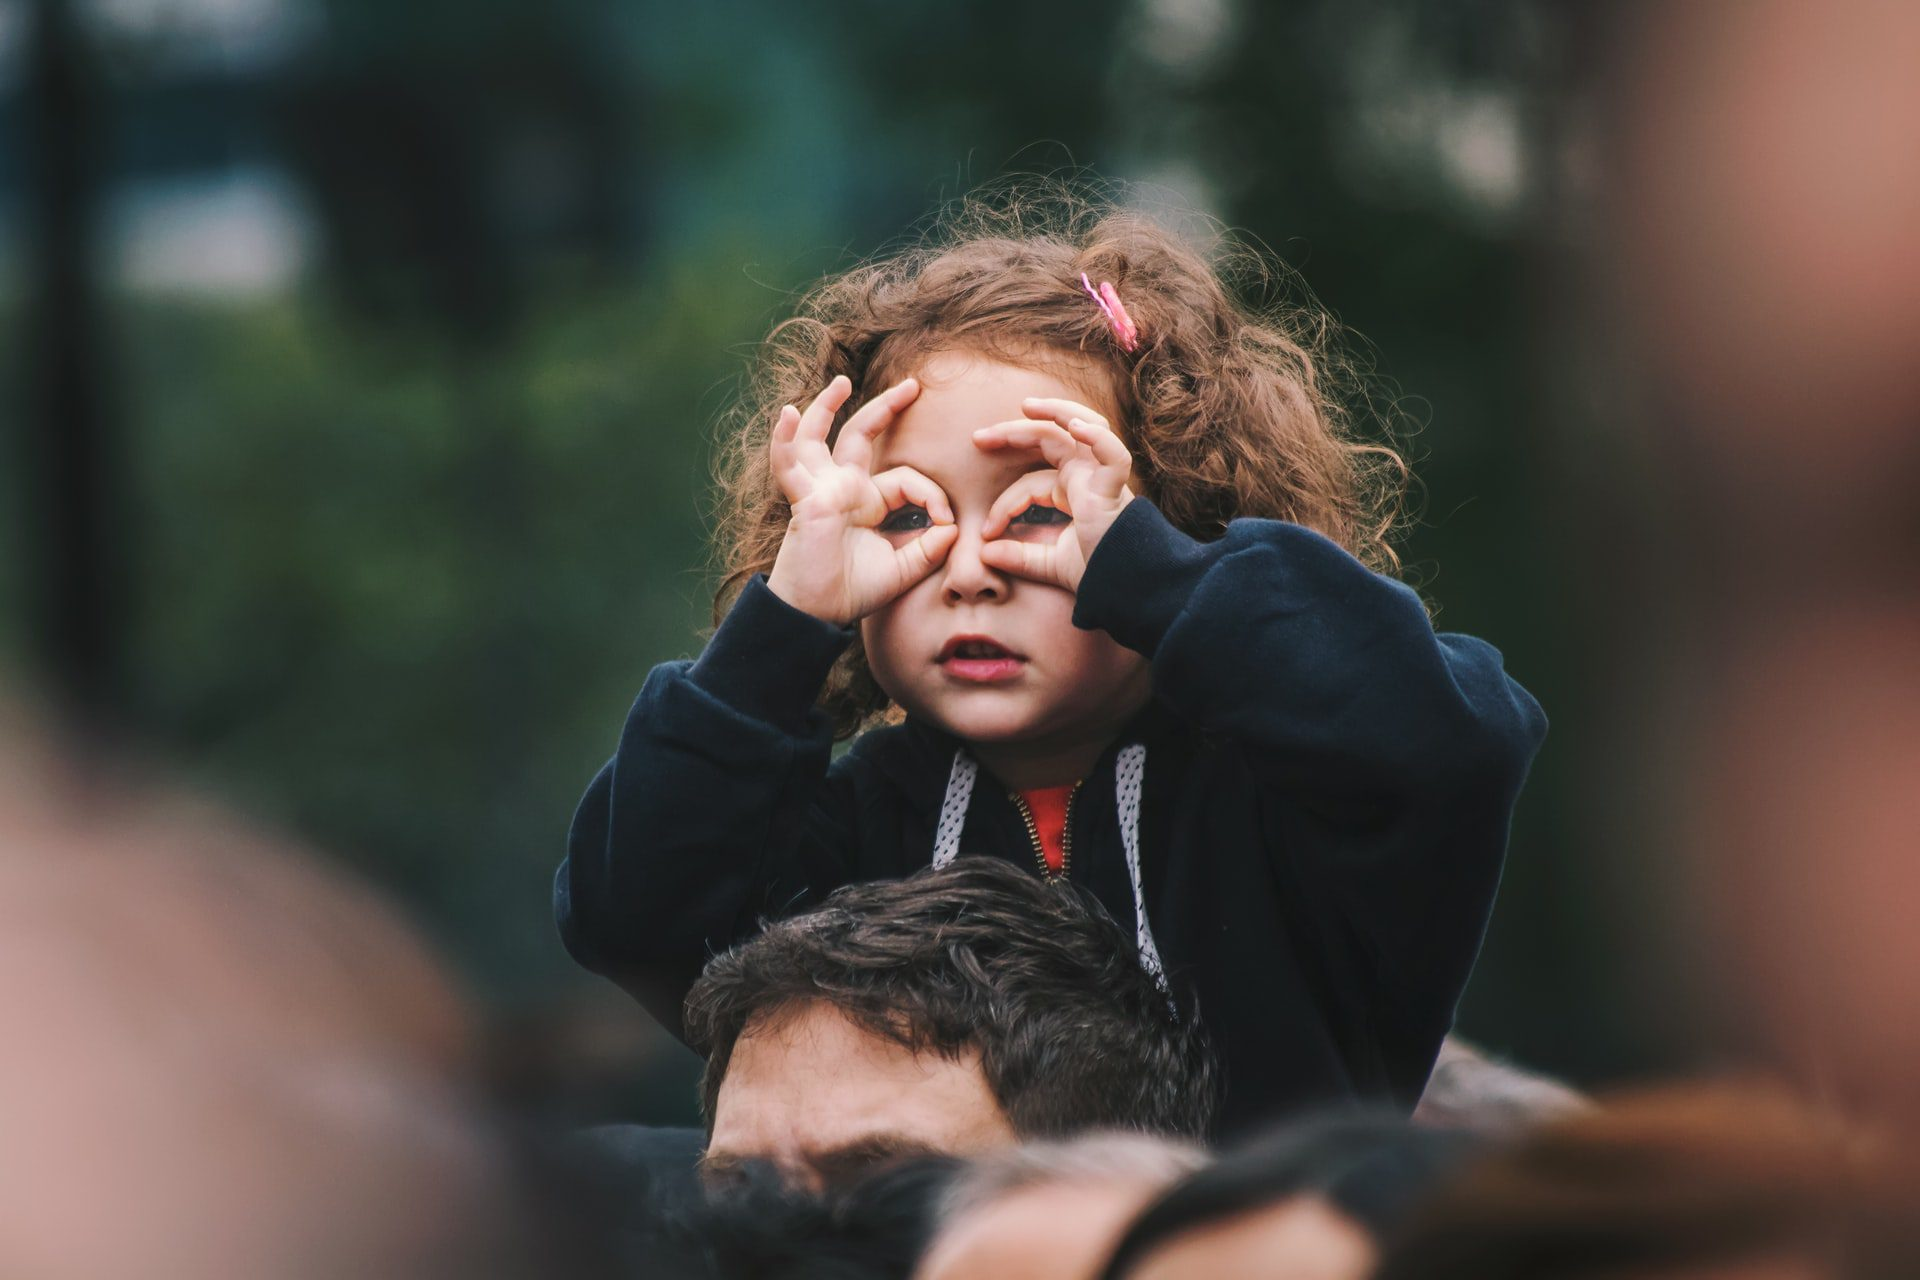 5 Warning Signs of Vision Problems in Children